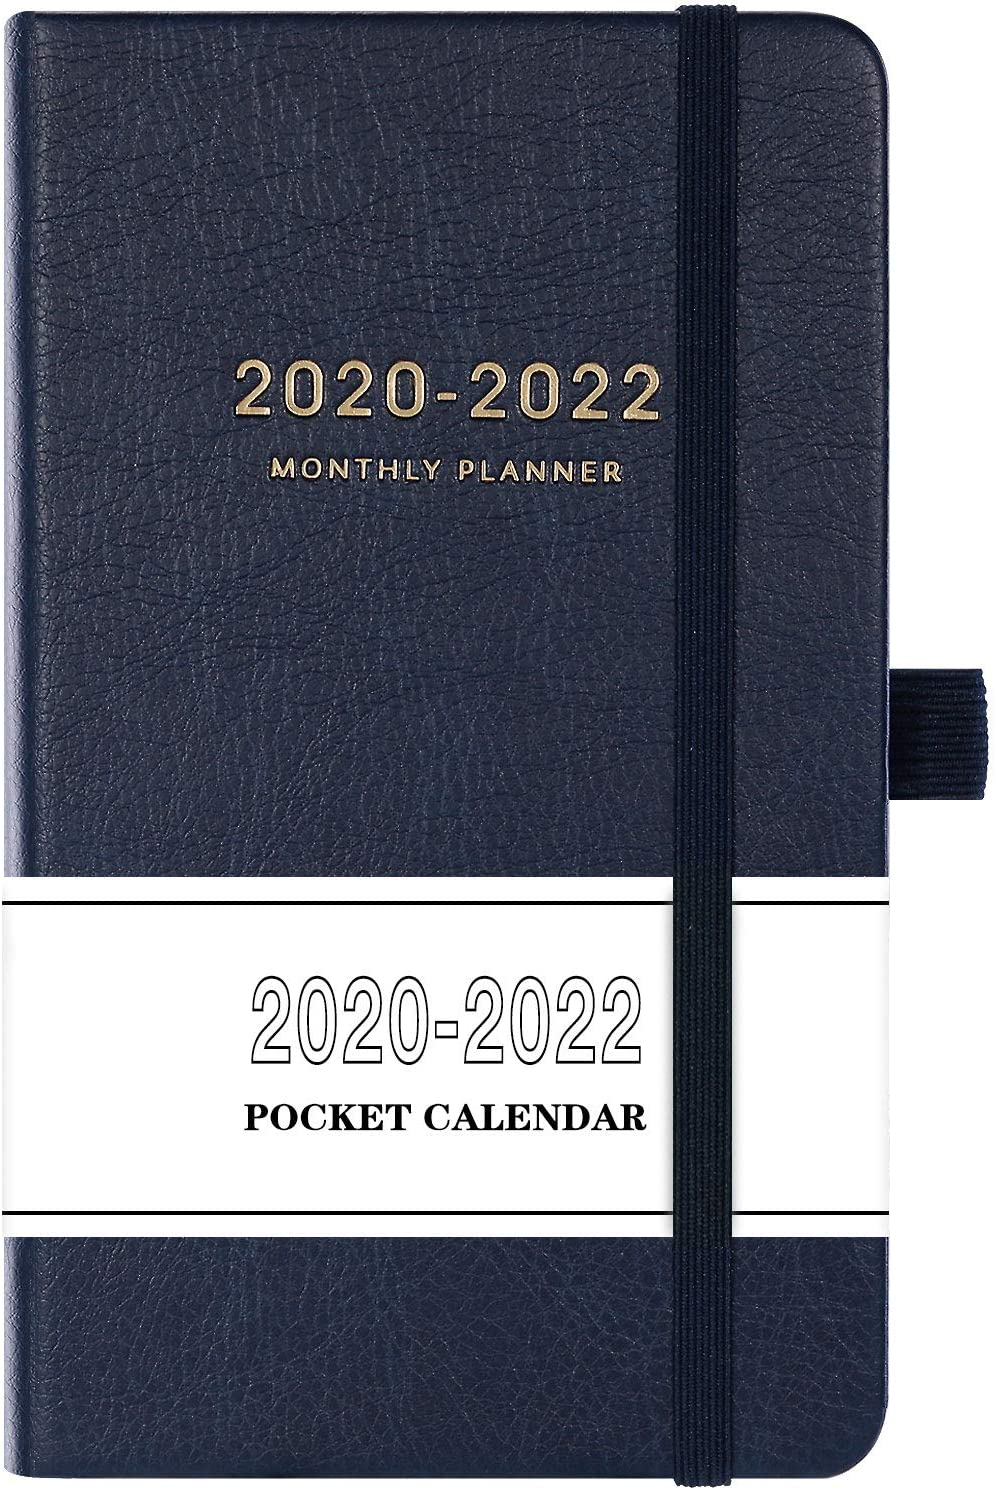 2020-2022 Pocket Calendar - Monthly Pocket Planner (36-Month) with 63 Notes Pages, 3.8 x 6.3, 3 Year Monthly Planner with Contacts, Holidays and Pen Holder, Back Pocket, Gift Box - Navy Blue